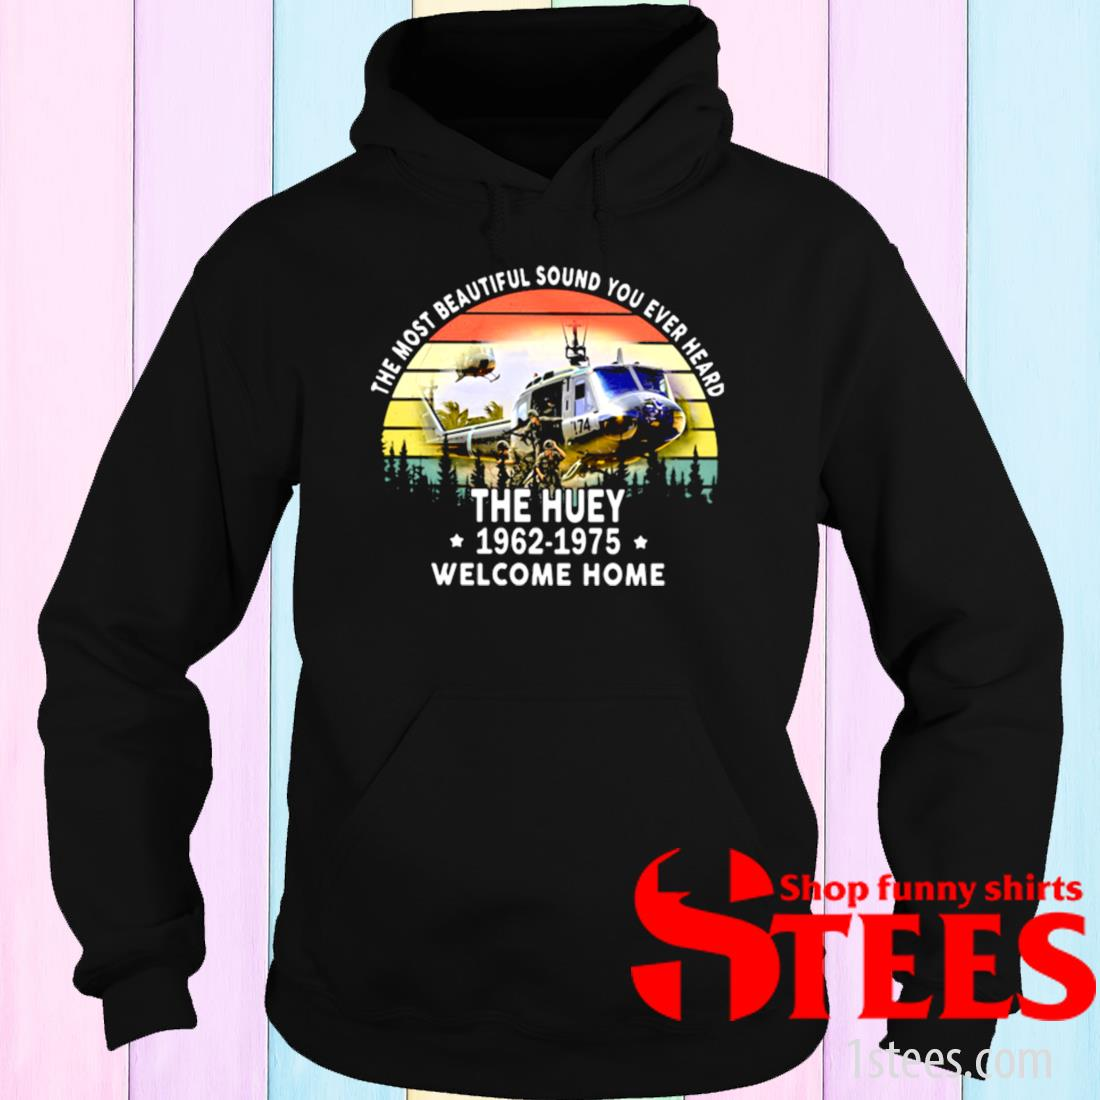 The Most Beautiful Sound You Ever Heard The Huey 1962-1975 Welcome Home Helicapter Vintage Shirt hoodie